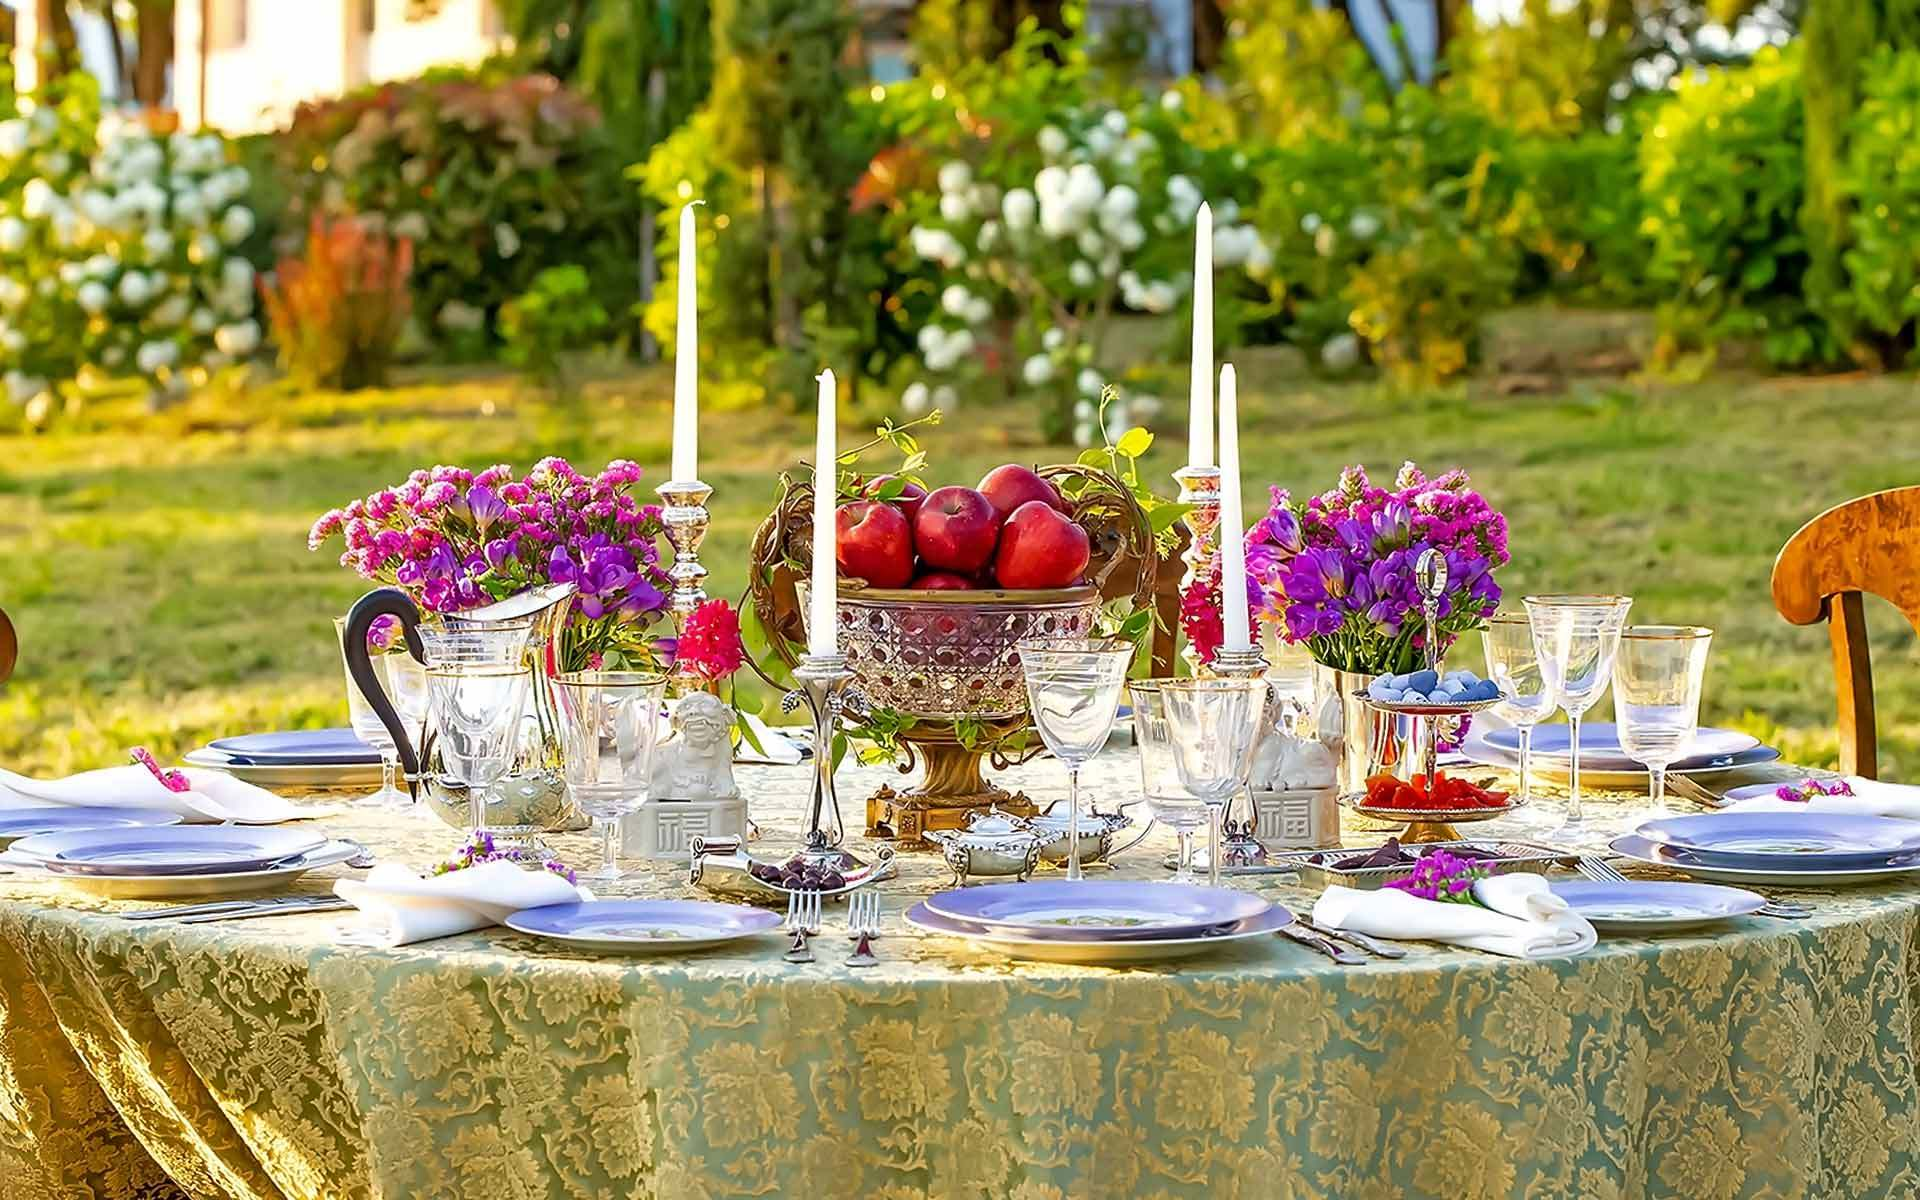 Rustic-wedding-centerpiece-for-your-rustic-or-country-wedding-from-Diamond-Events